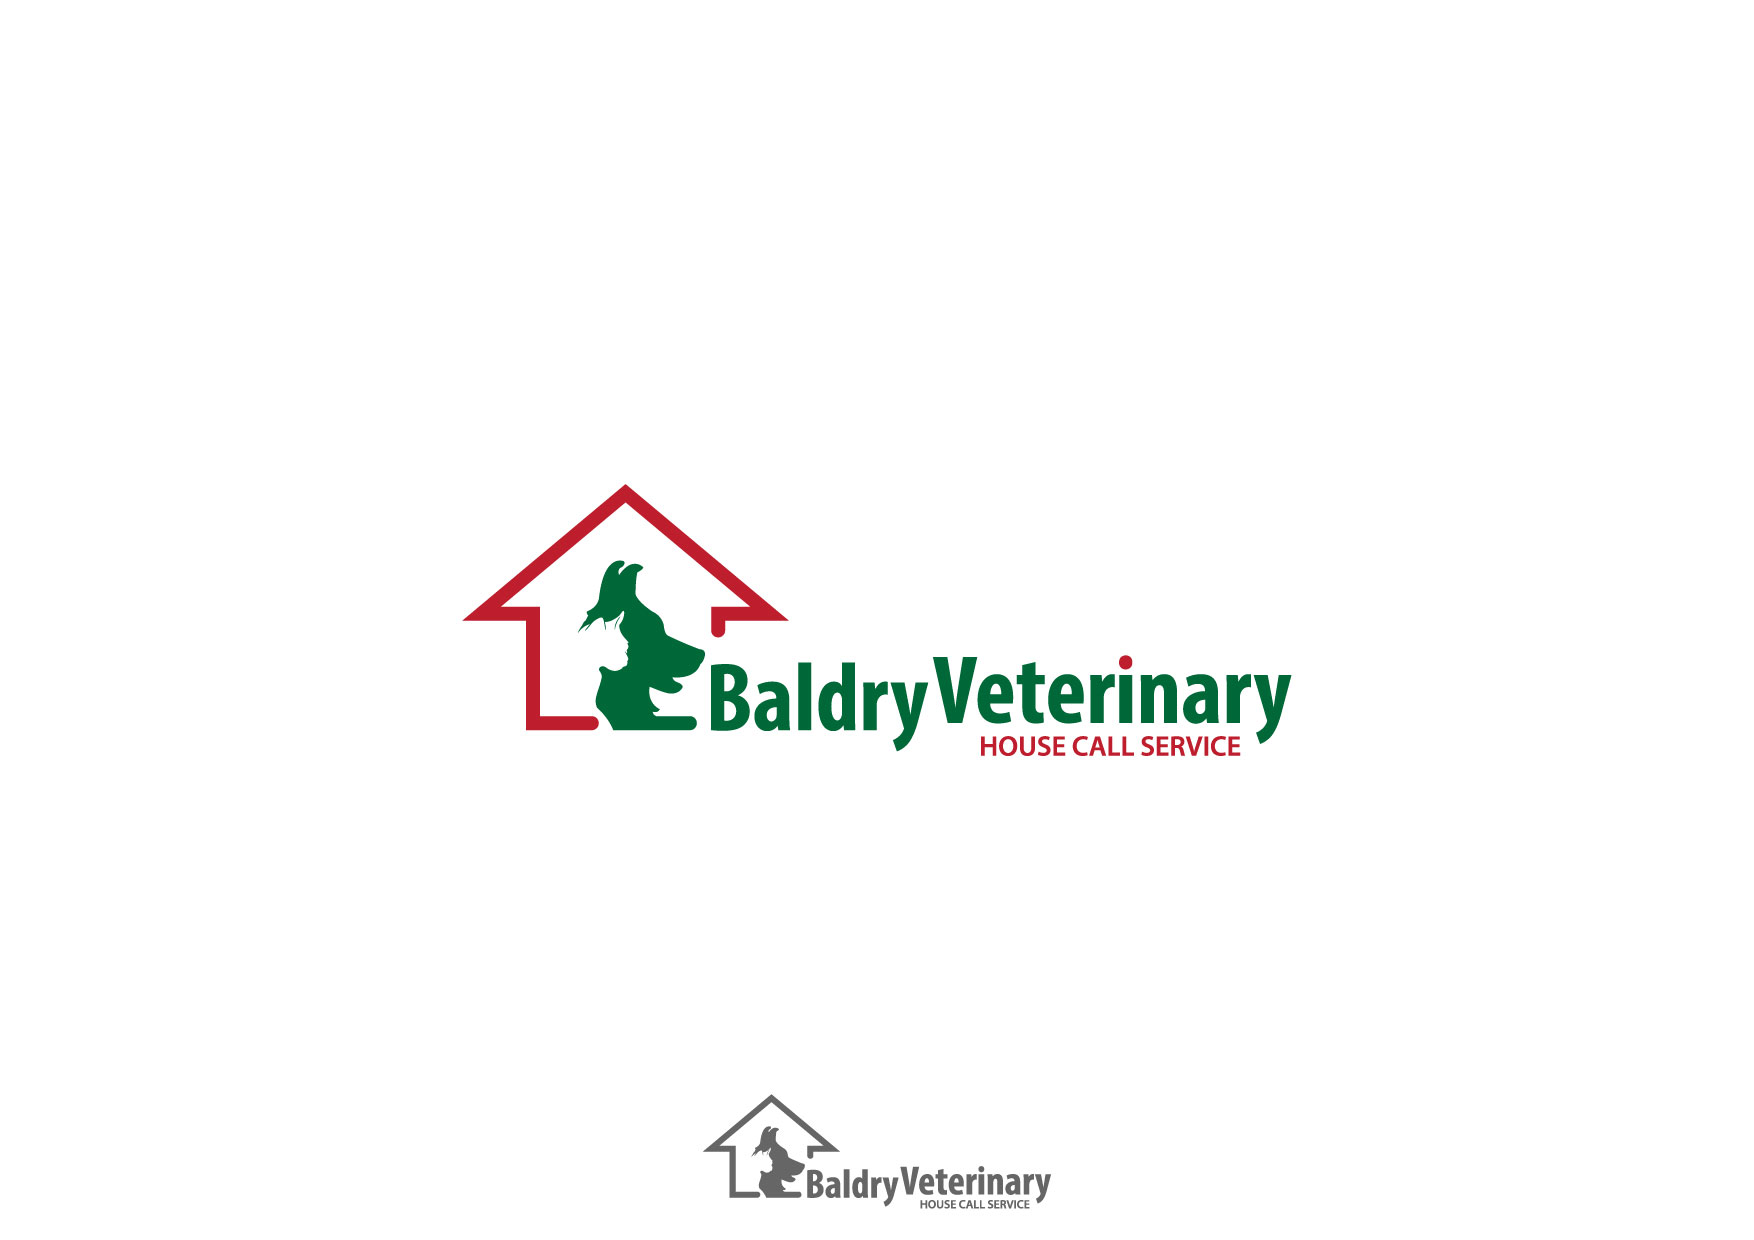 Logo Design by Nurgalih Destianto - Entry No. 21 in the Logo Design Contest Captivating Logo Design for Baldry Veterinary House Call Service.